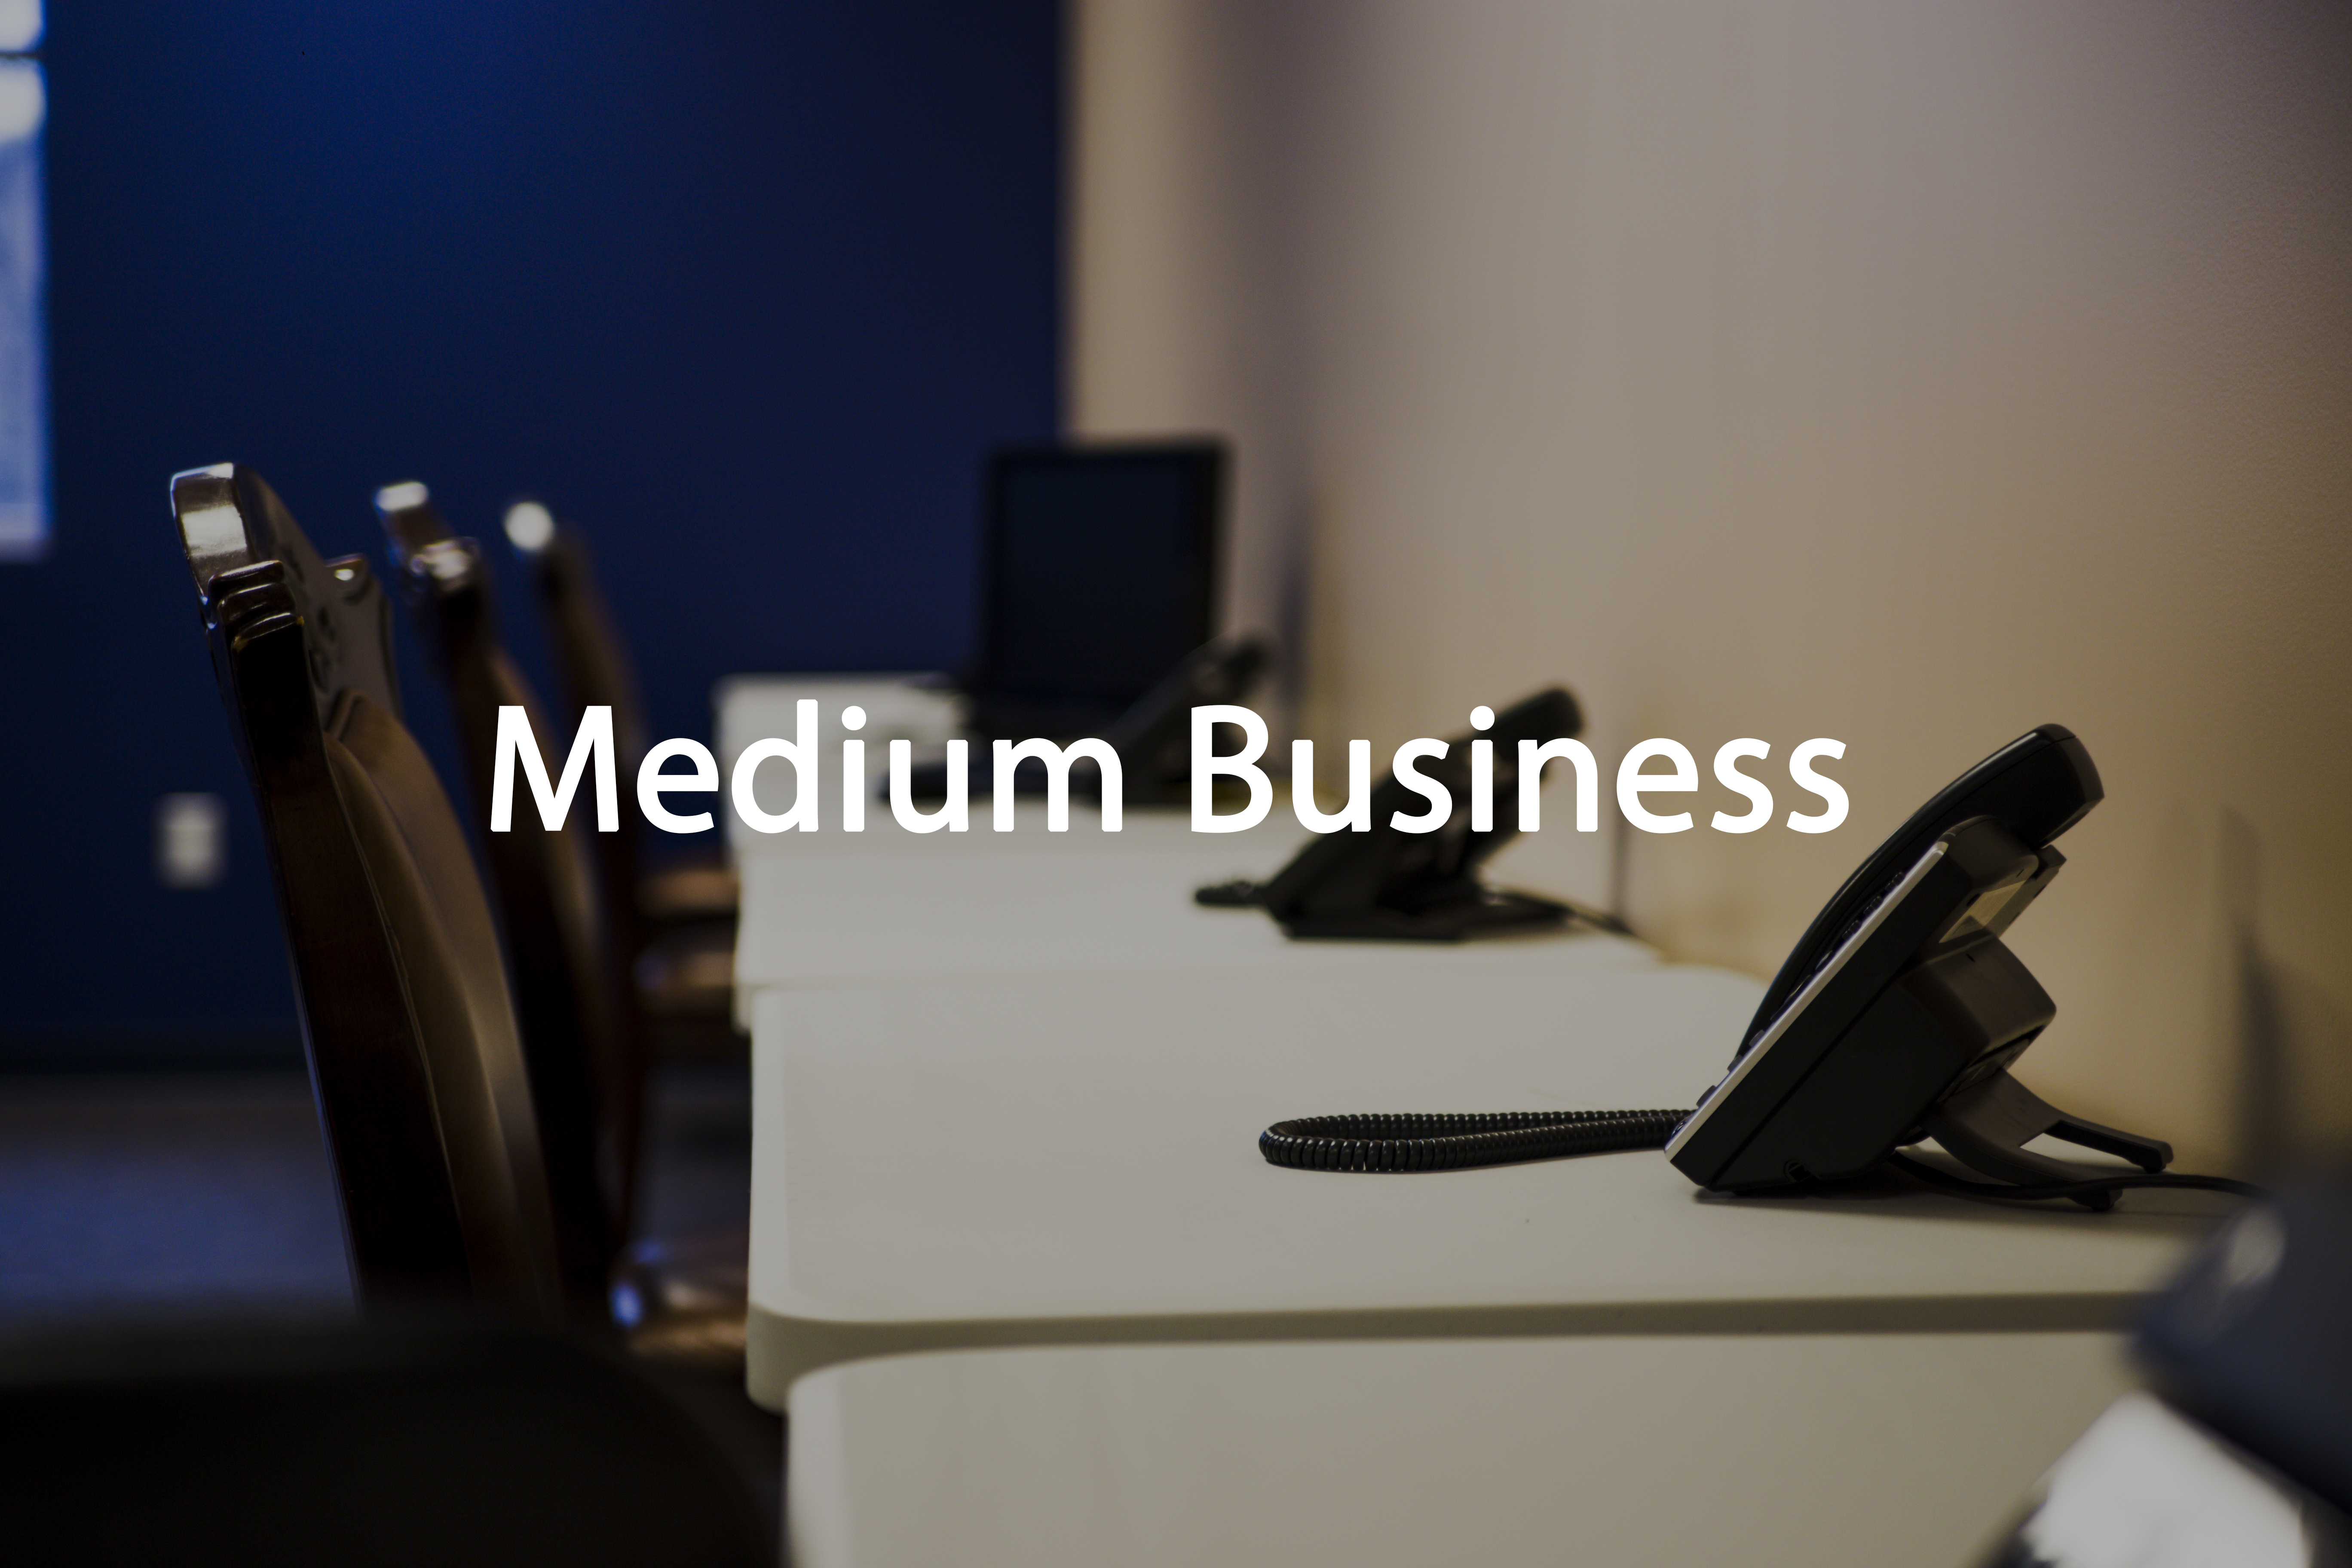 Medium Business